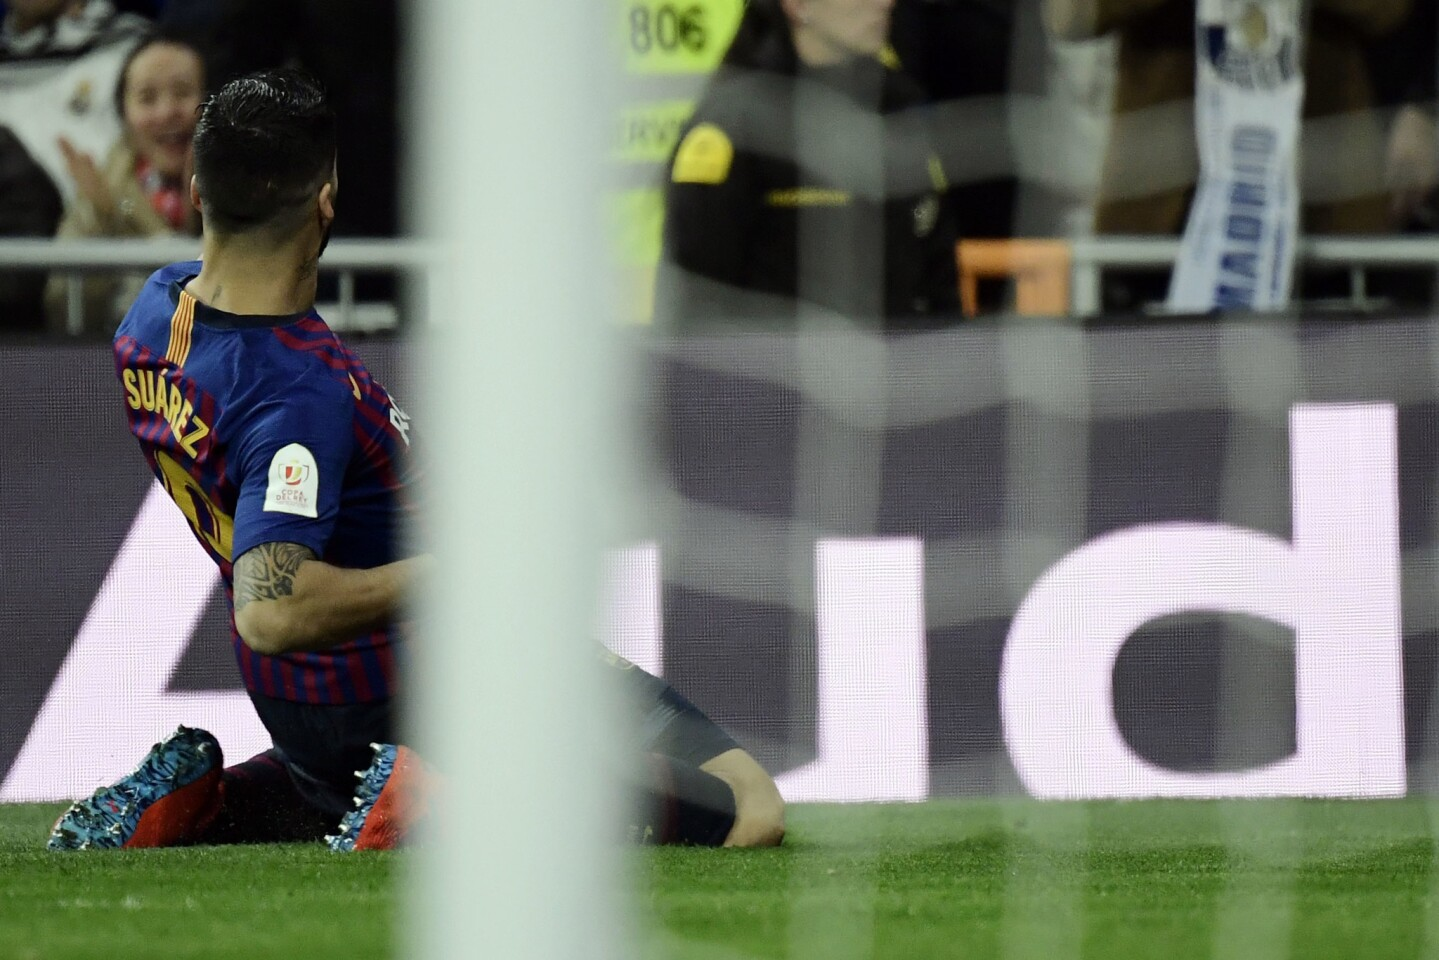 Barcelona's Uruguayan forward Luis Suarez celebrates his goal during the Spanish Copa del Rey (King's Cup) semi-final second leg football match between Real Madrid and Barcelona at the Santiago Bernabeu stadium in Madrid on February 27, 2019. (Photo by JAVIER SORIANO / AFP)JAVIER SORIANO/AFP/Getty Images ** OUTS - ELSENT, FPG, CM - OUTS * NM, PH, VA if sourced by CT, LA or MoD **